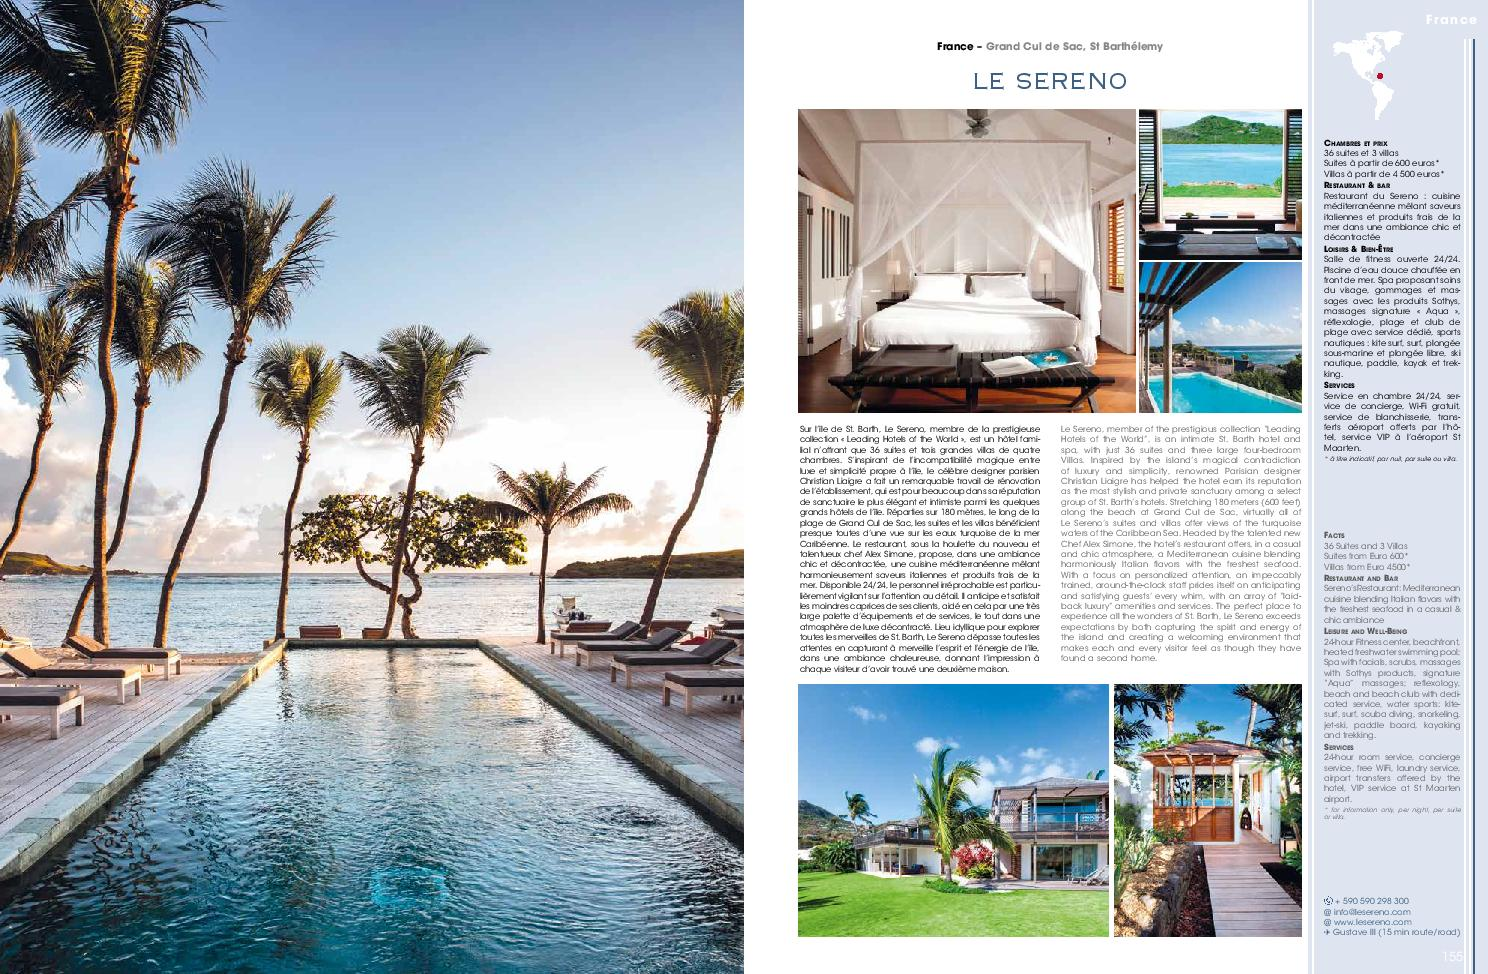 160401_LE_SERENO_BESTHOTELS-page-002